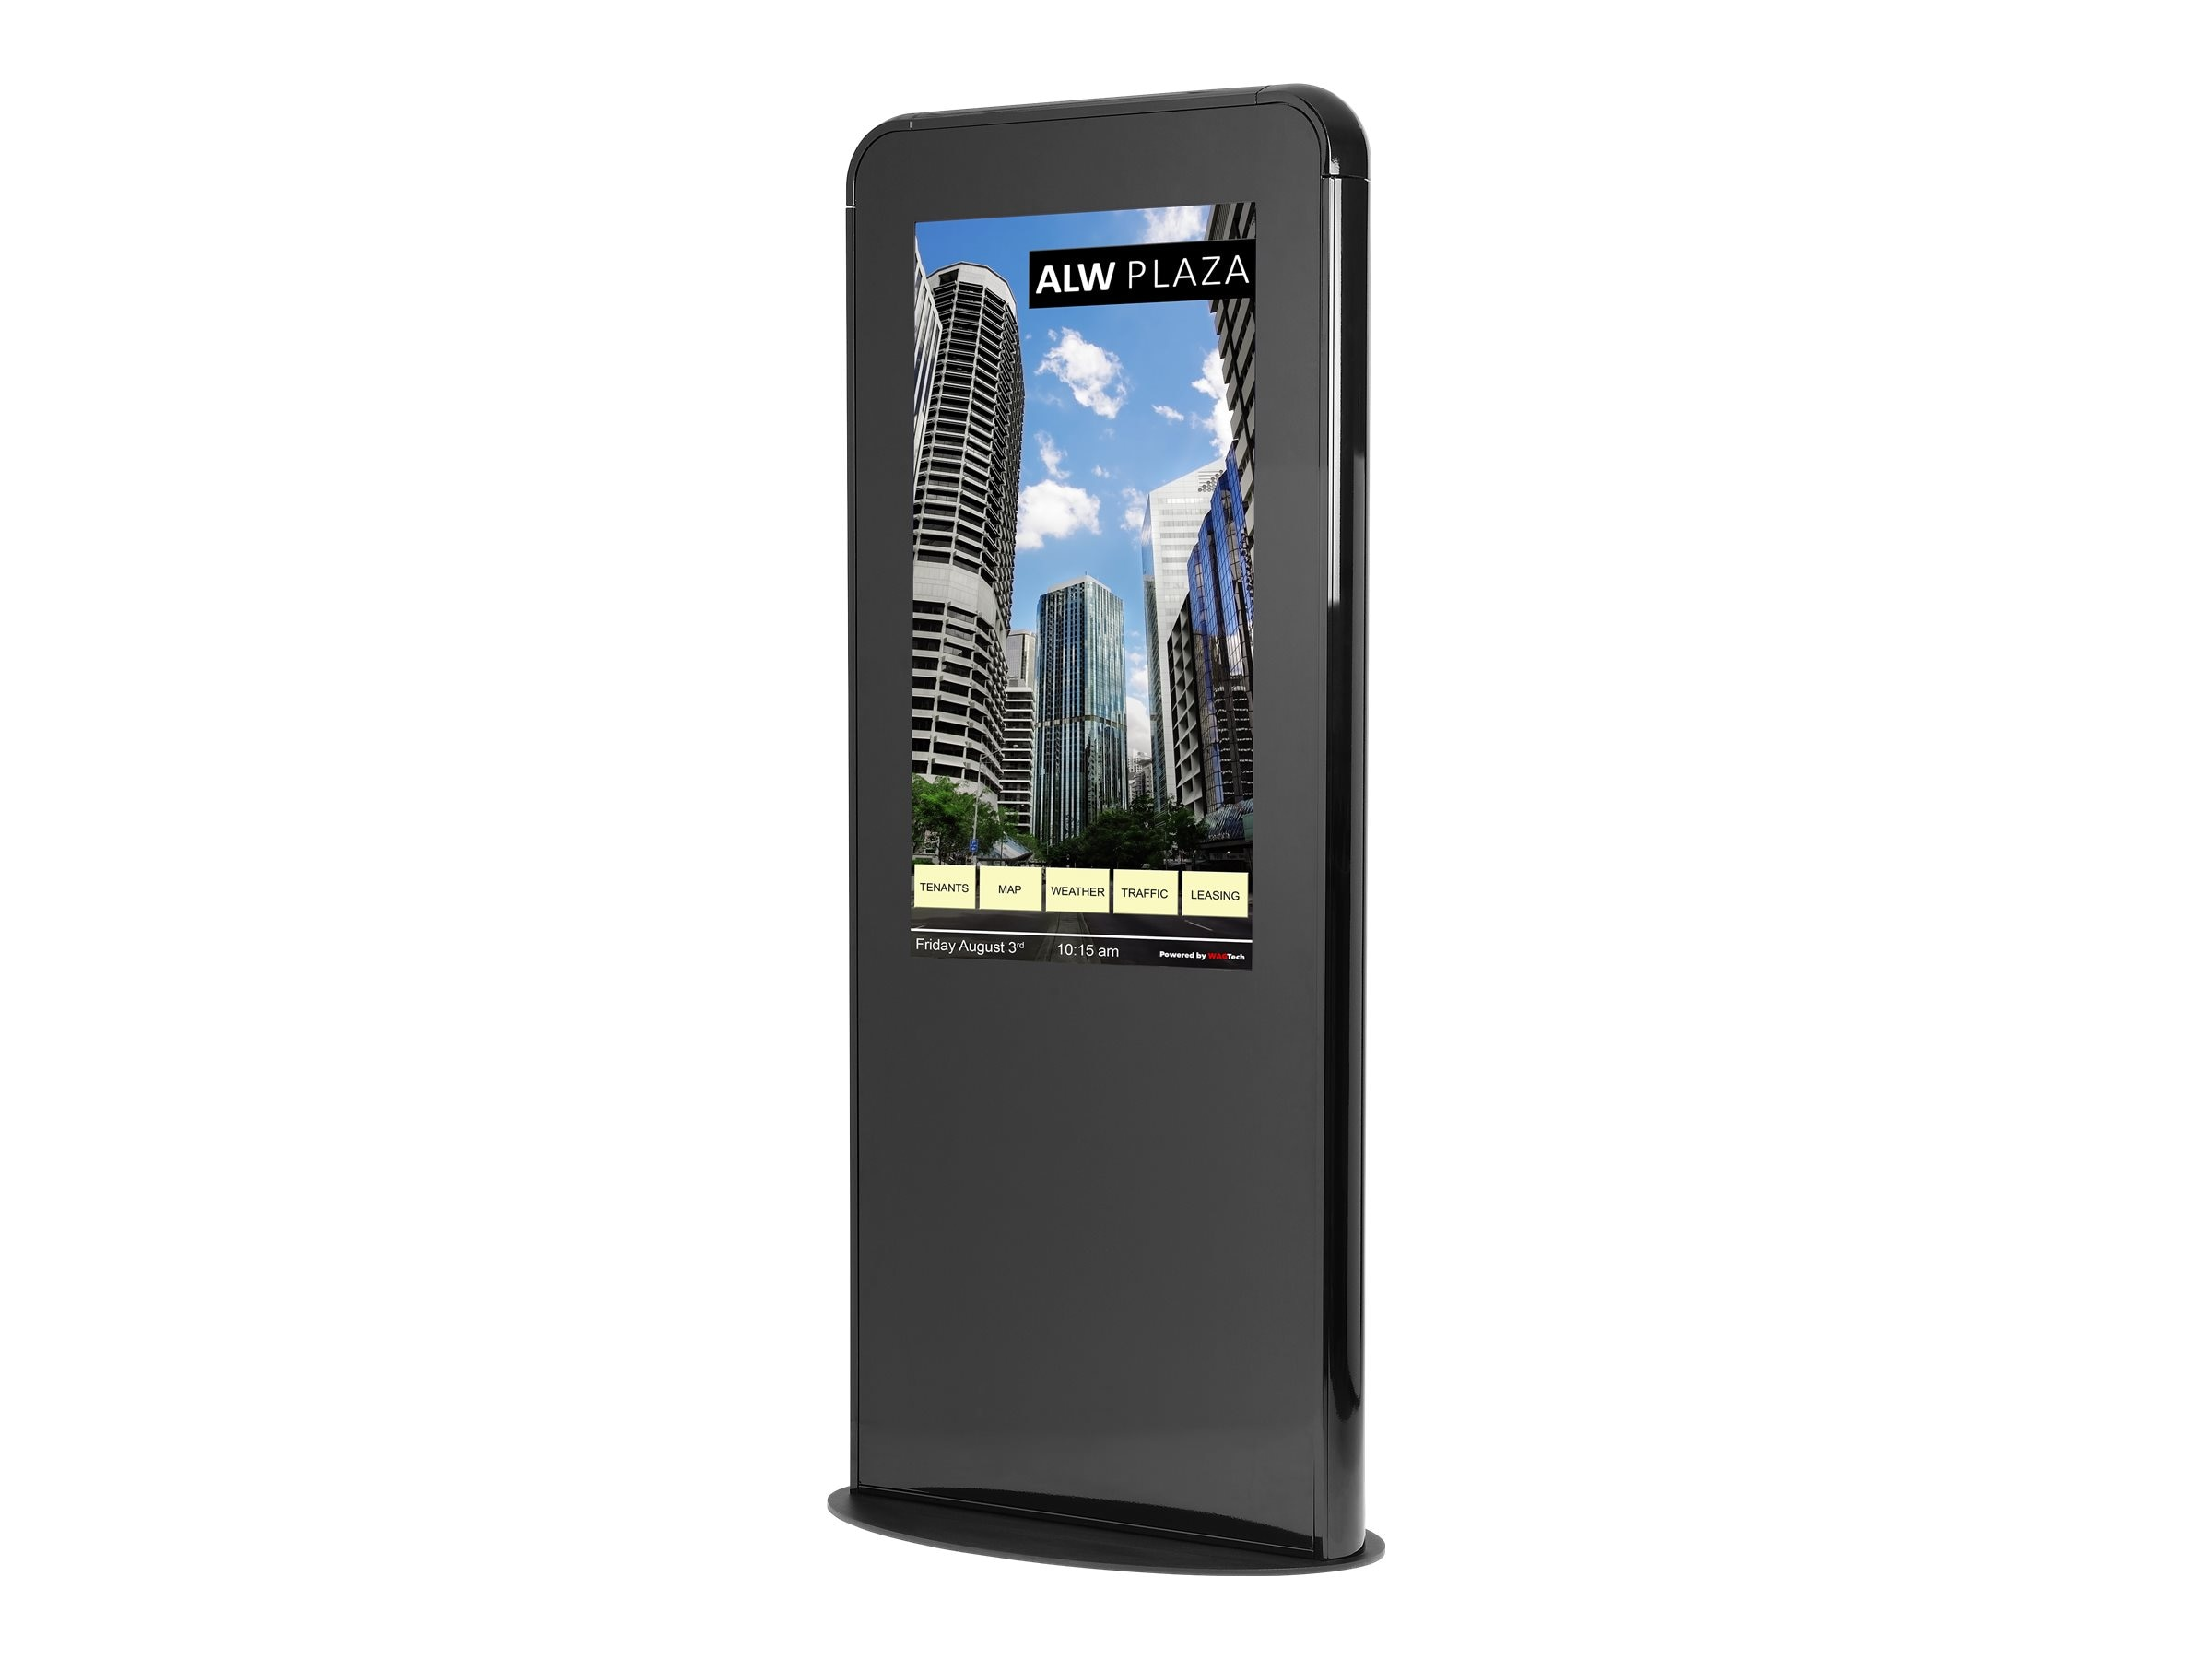 NEC 46 Full HD LED-LCD Touchscreen Portait Kiosk, Black, NEC-KIOSK-PORT-B